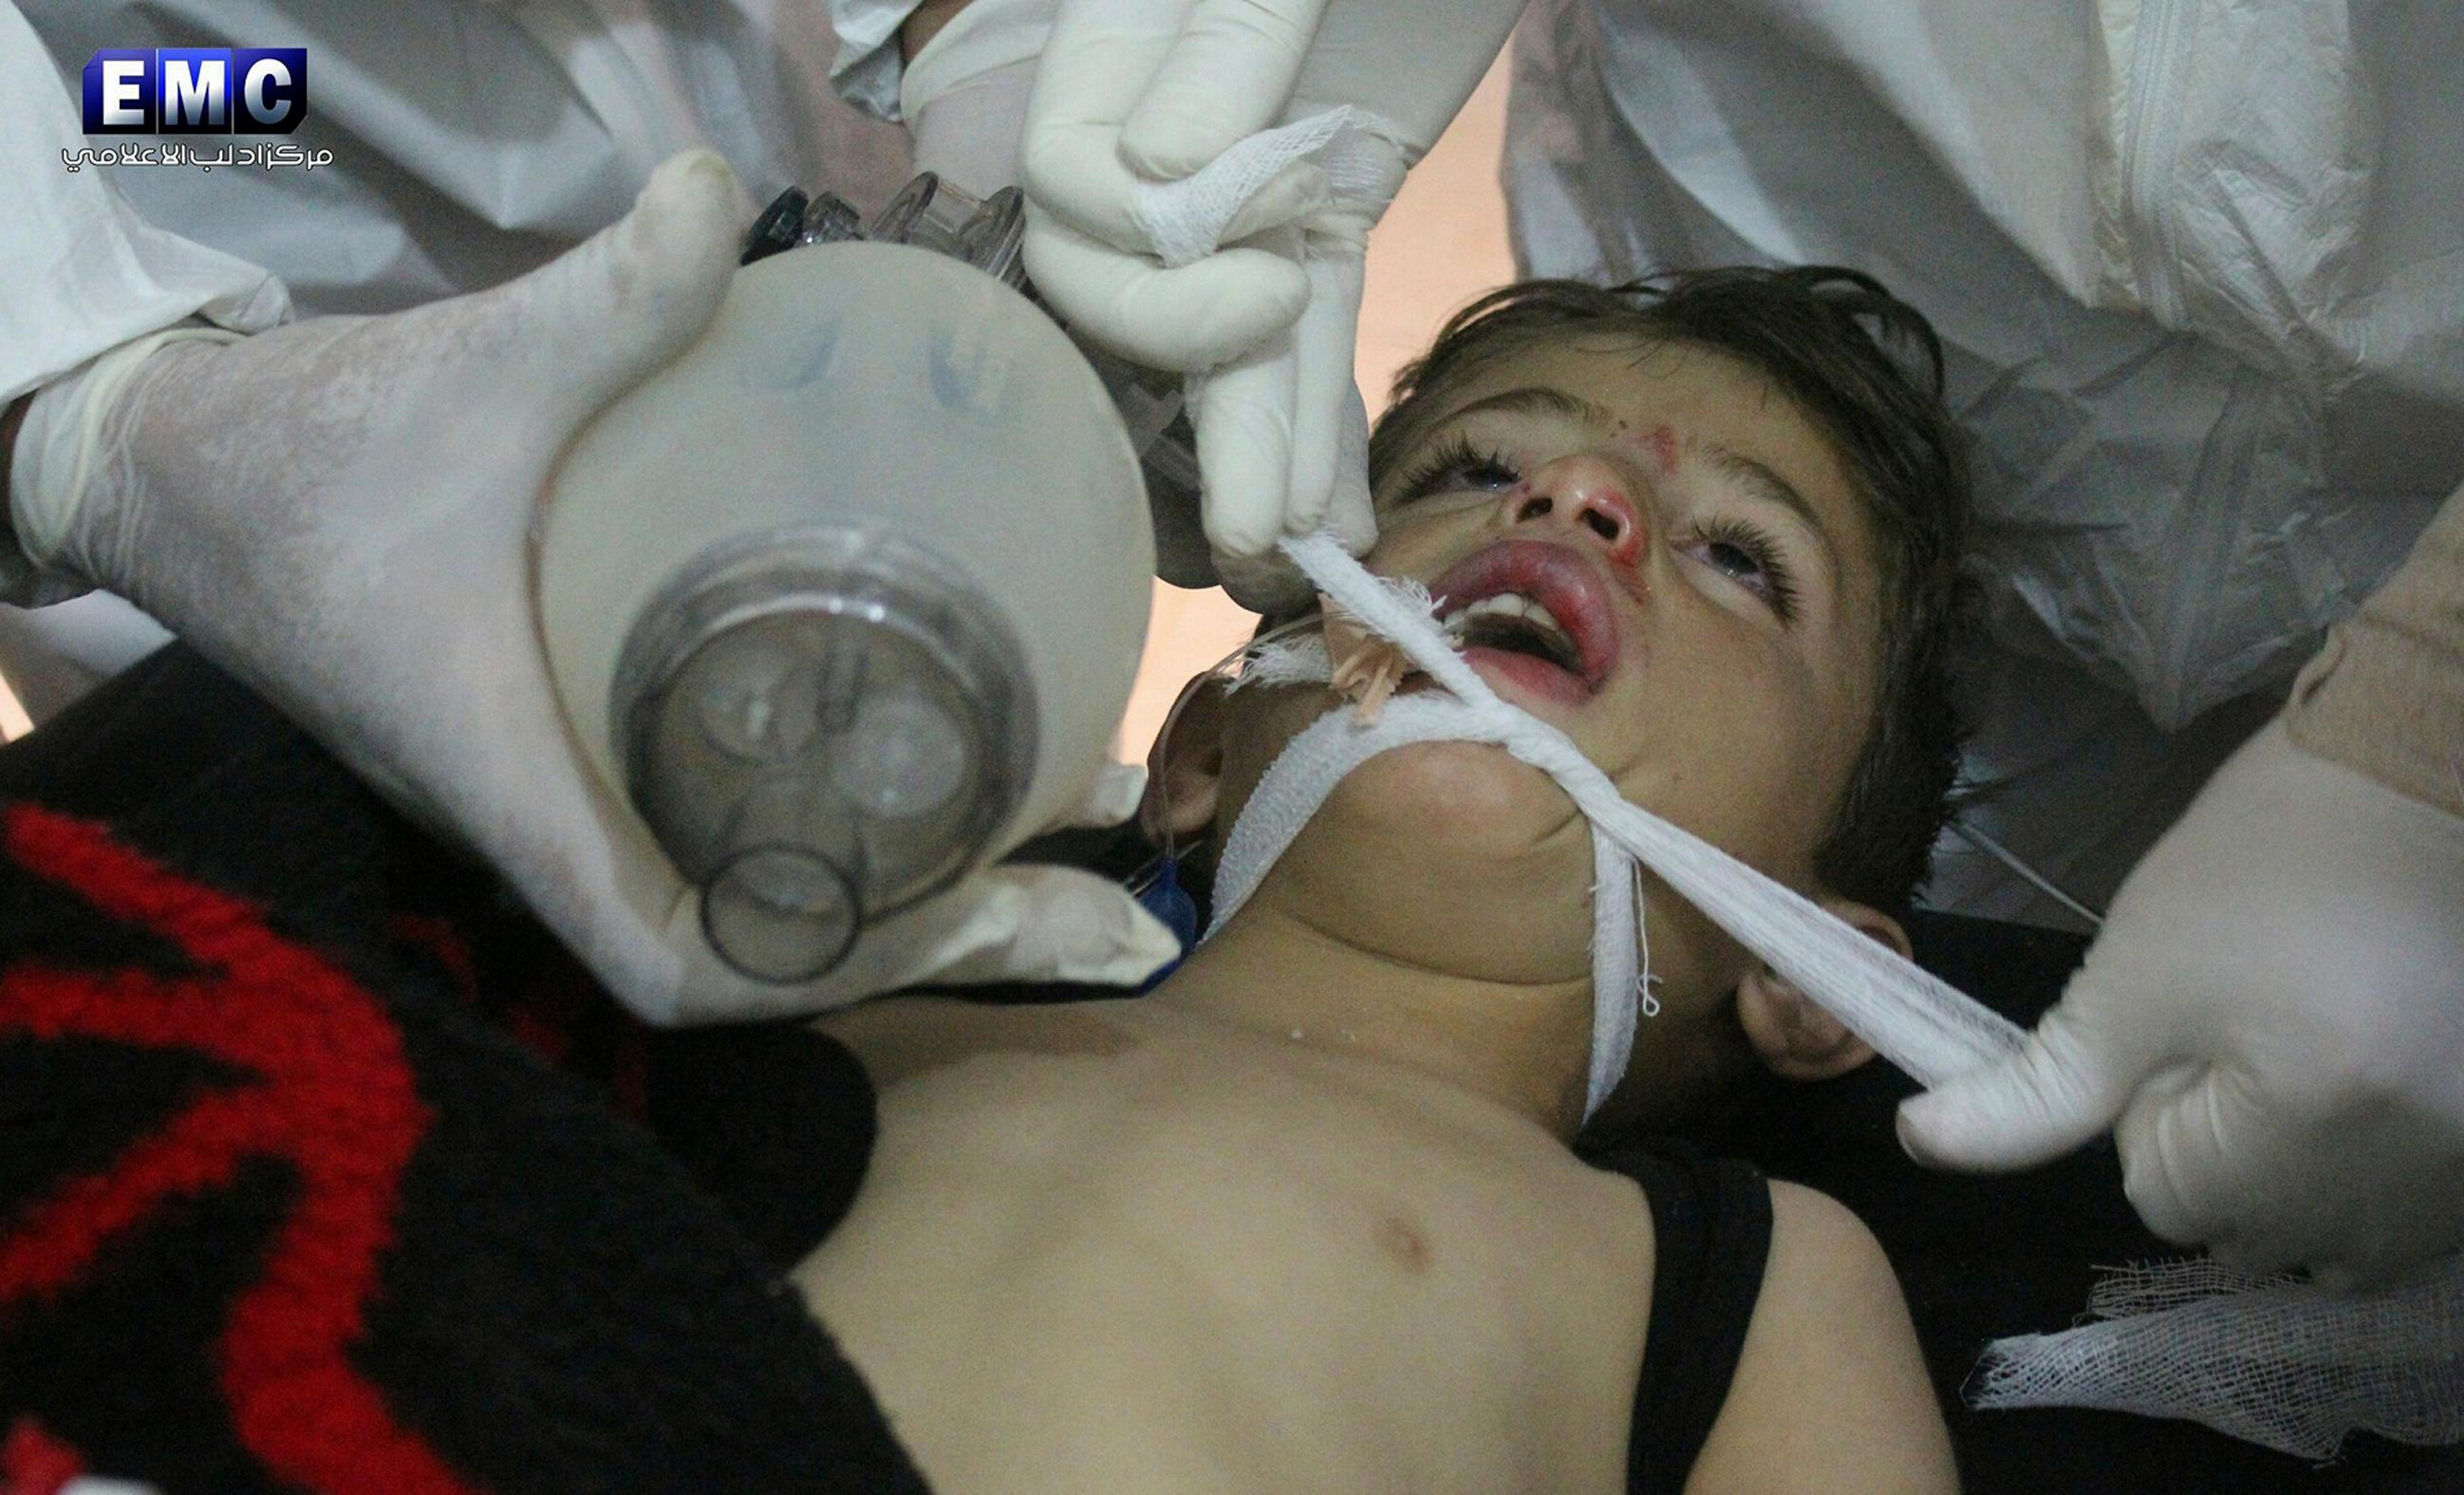 FILE -- In this Tuesday, April 4, 2017 file photo, provided by the Syrian anti-government activist group Edlib Media Center, which has been authenticated based on its contents and other AP reporting, shows Syrian doctors treating a child following a suspected chemical attack, at a makeshift hospital, in the town of Khan Sheikhoun, northern Idlib province, Syria. Turkey's health minister, Recep Akdag, said Tuesday, April 11, 2017, that test results conducted on victims of the chemical attack in Khan Sheikhoun confirm that sarin gas was used. (Edlib Media Center, via AP, File)